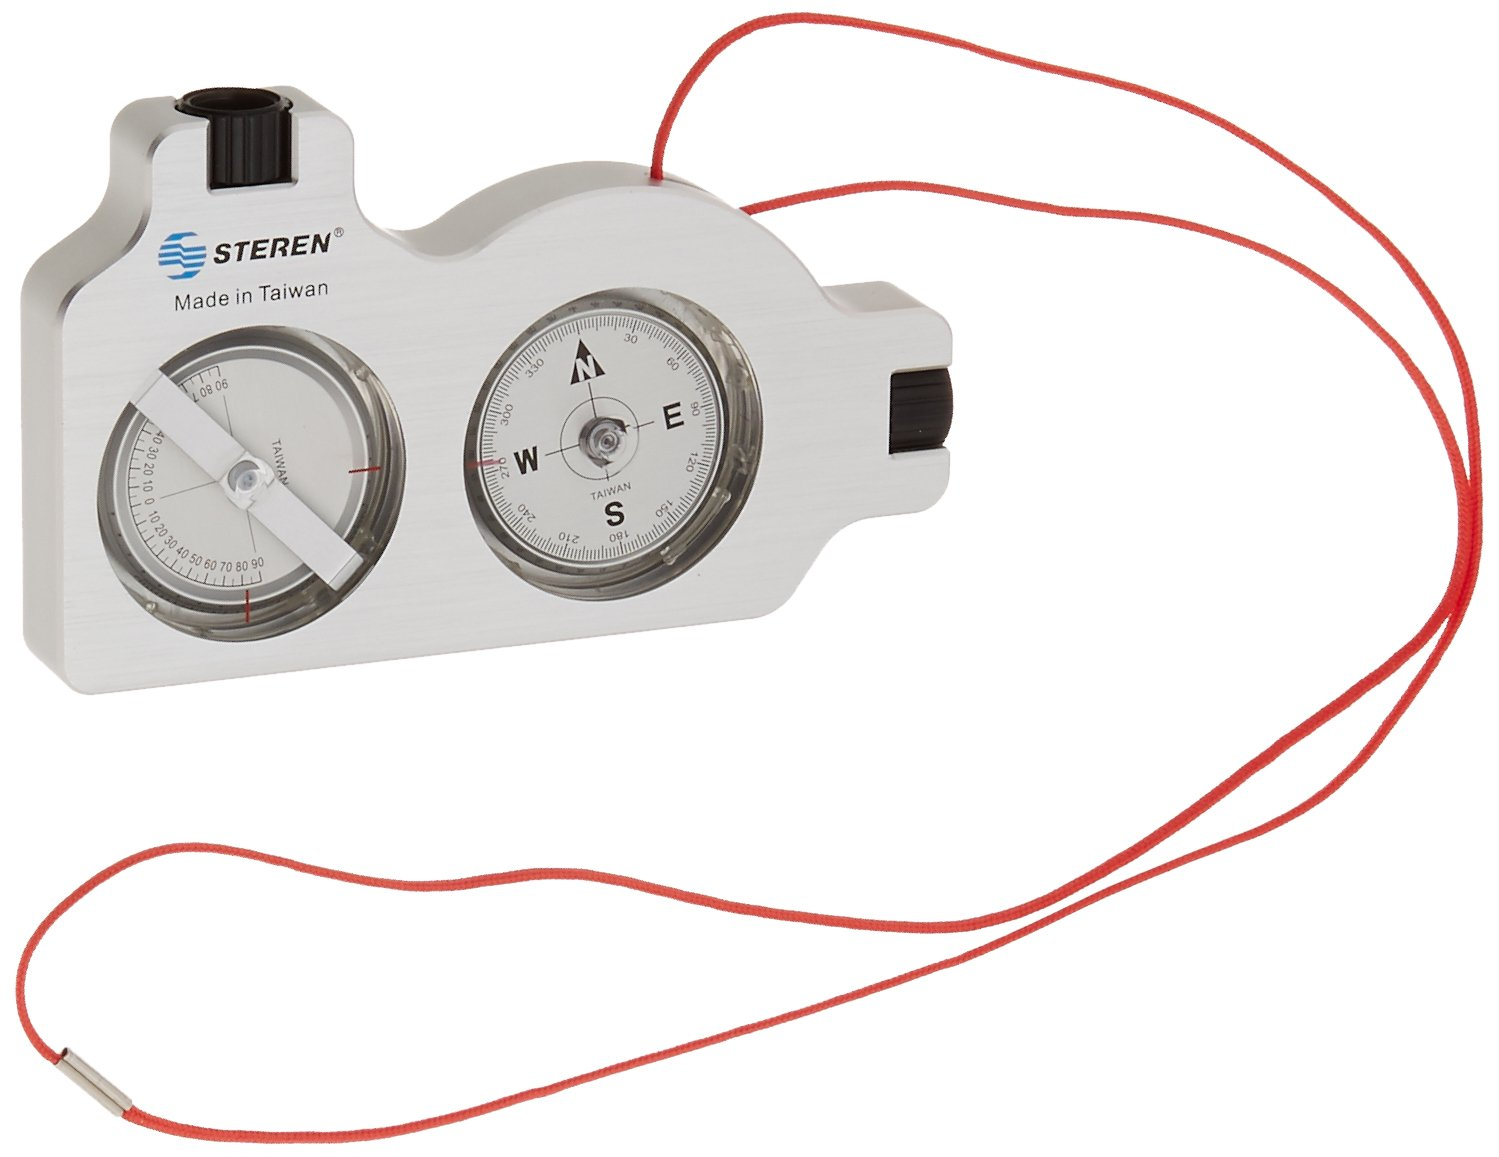 STEREN 203-661 STRN203661, Inclinometer/Compass Satellite Angle Finder